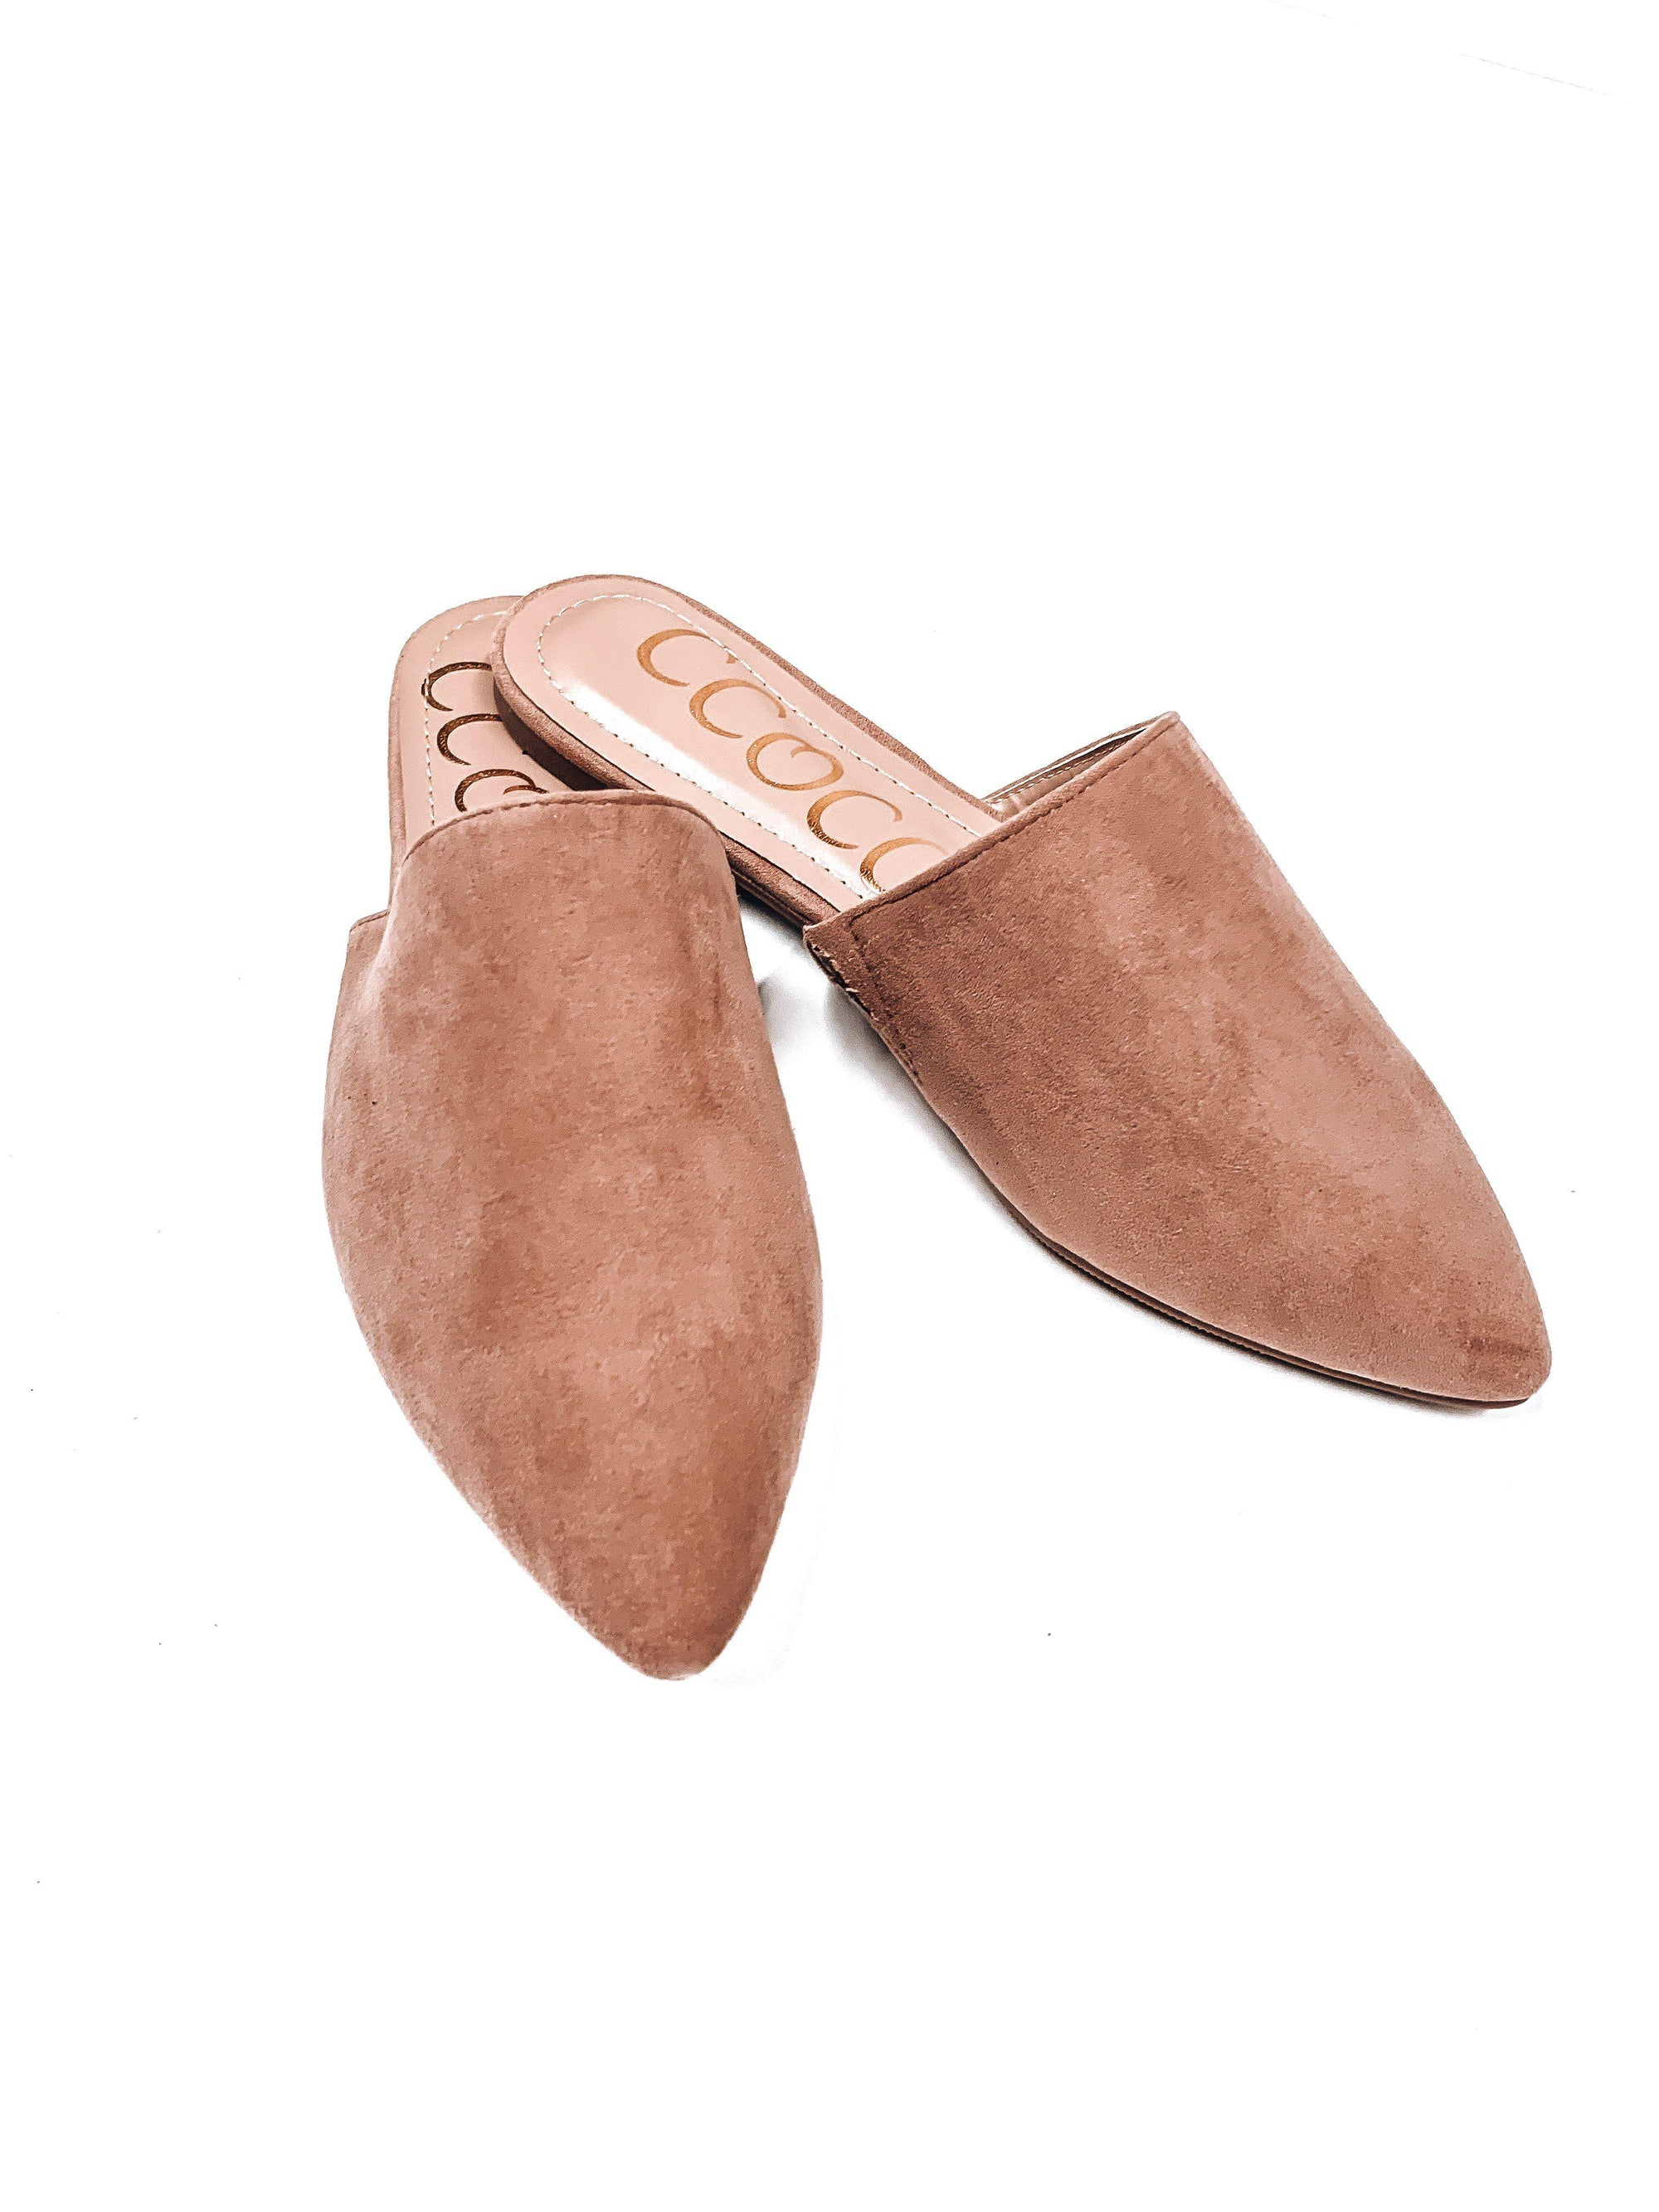 The Bethany-Mauve-Women's SHOES-New Arrivals-Runway Seven